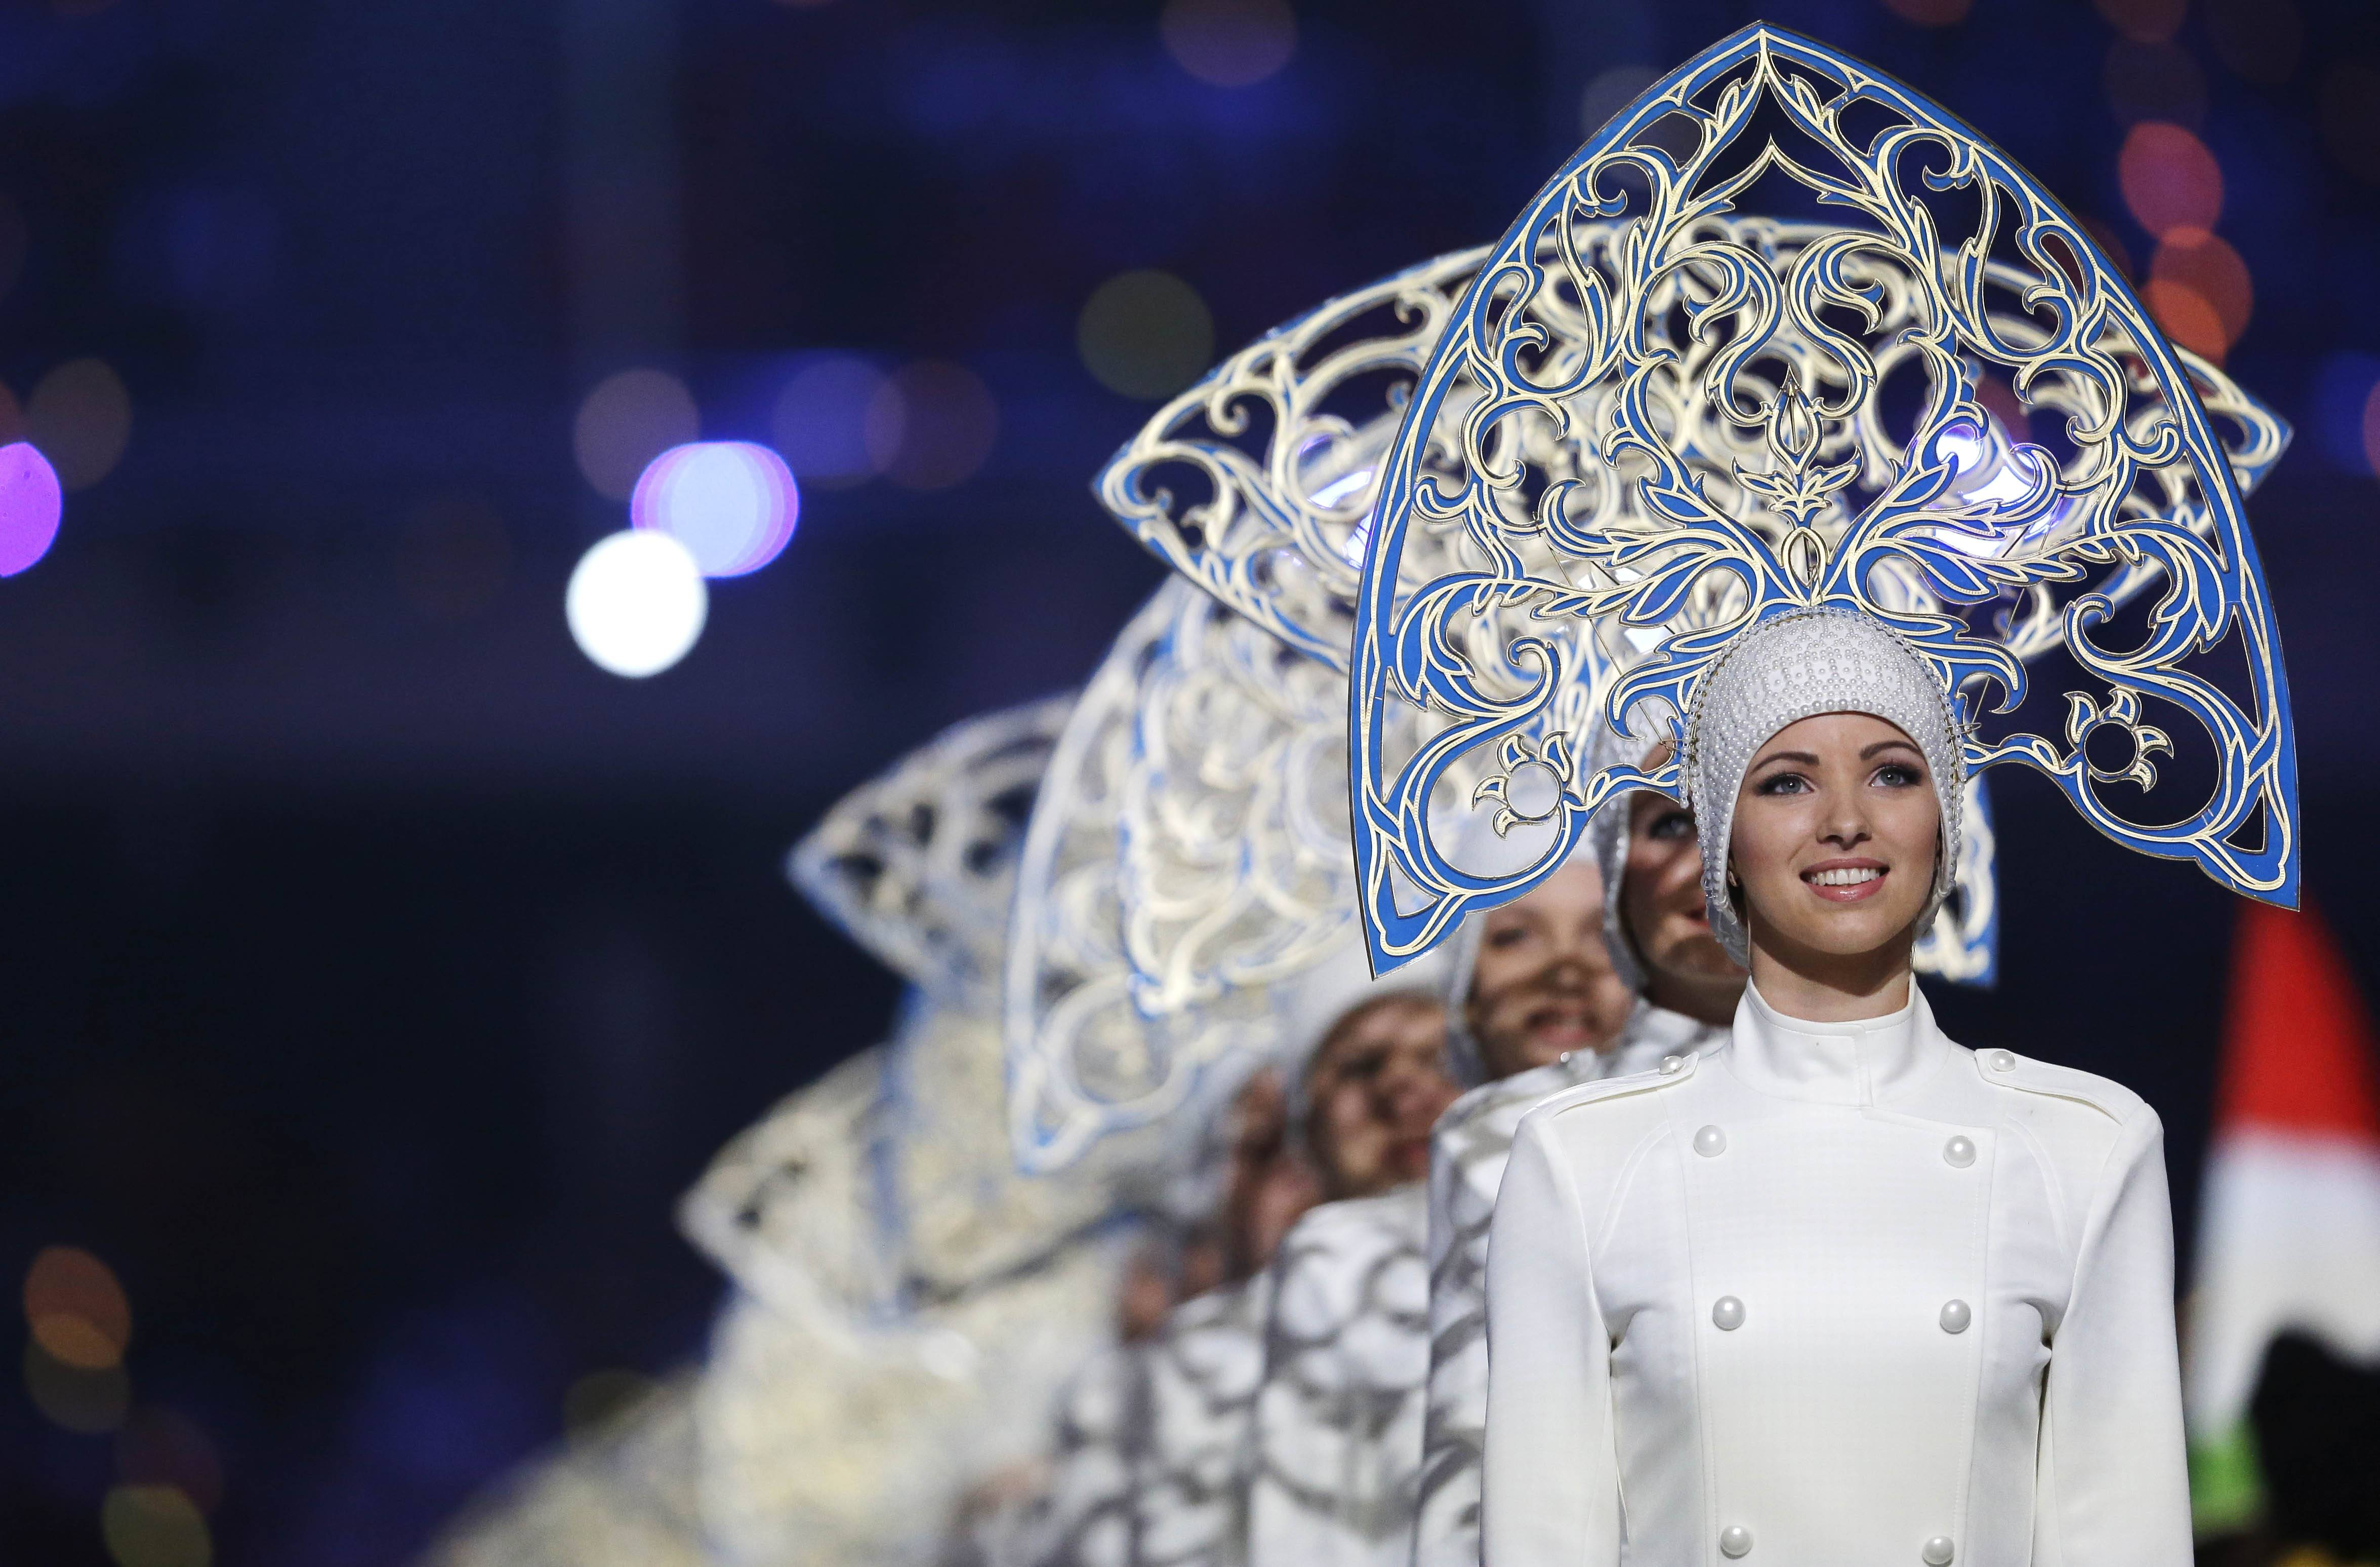 Performers line up during the closing ceremony of the 2014 Winter Olympics, Sunday, Feb. 23, 2014, in Sochi, Russia.